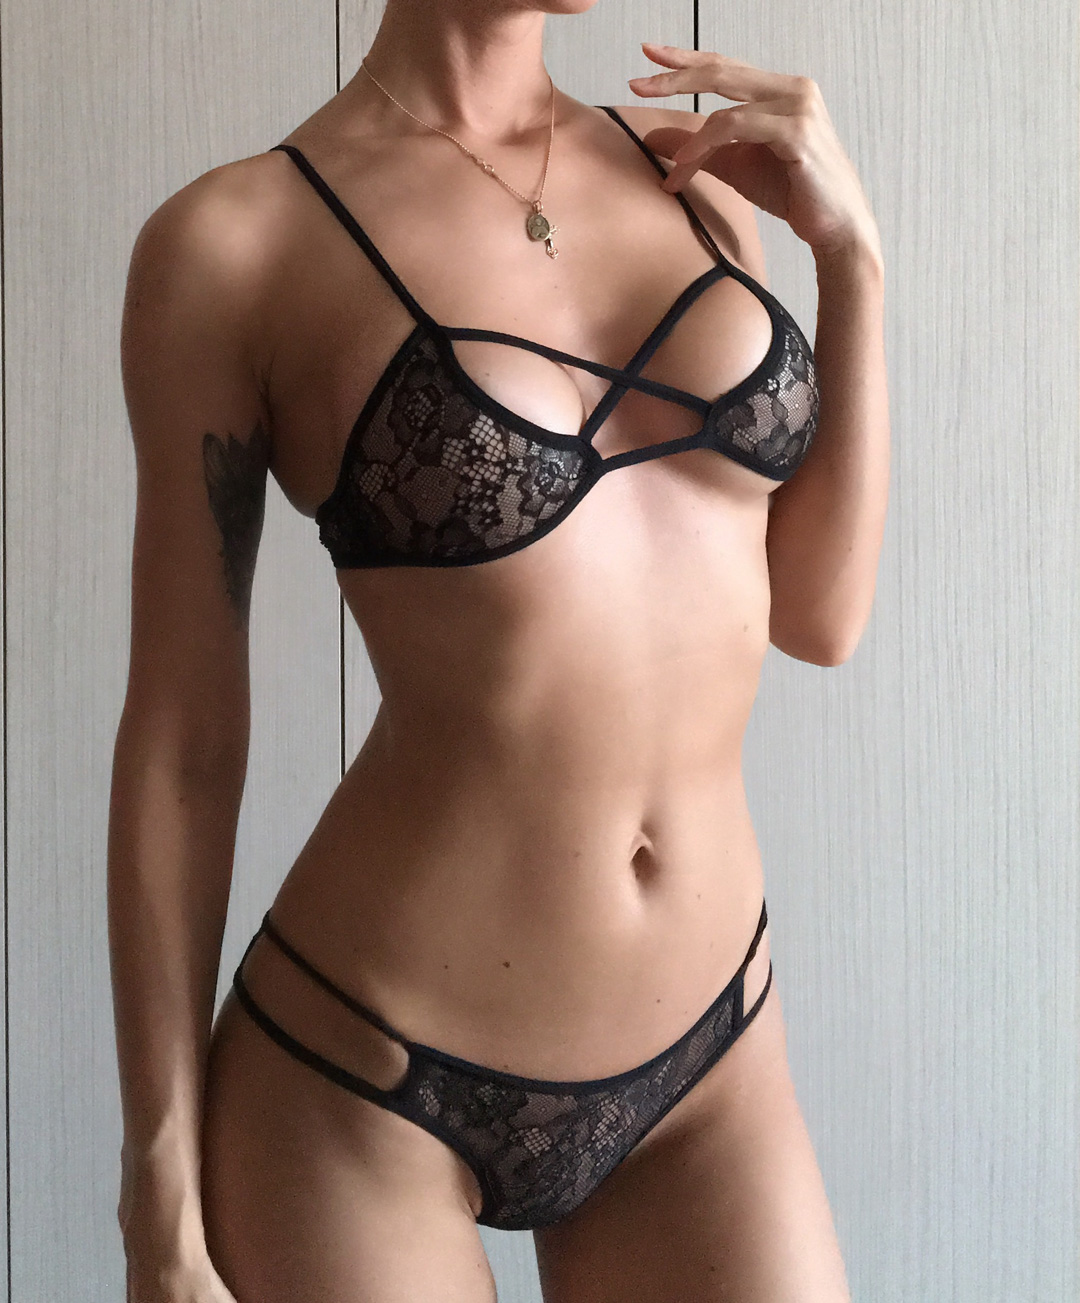 charcoal grey lined with sheer black mesh ethically handmade to order AMY lingerie set soft cup bra and open back low waist knickers